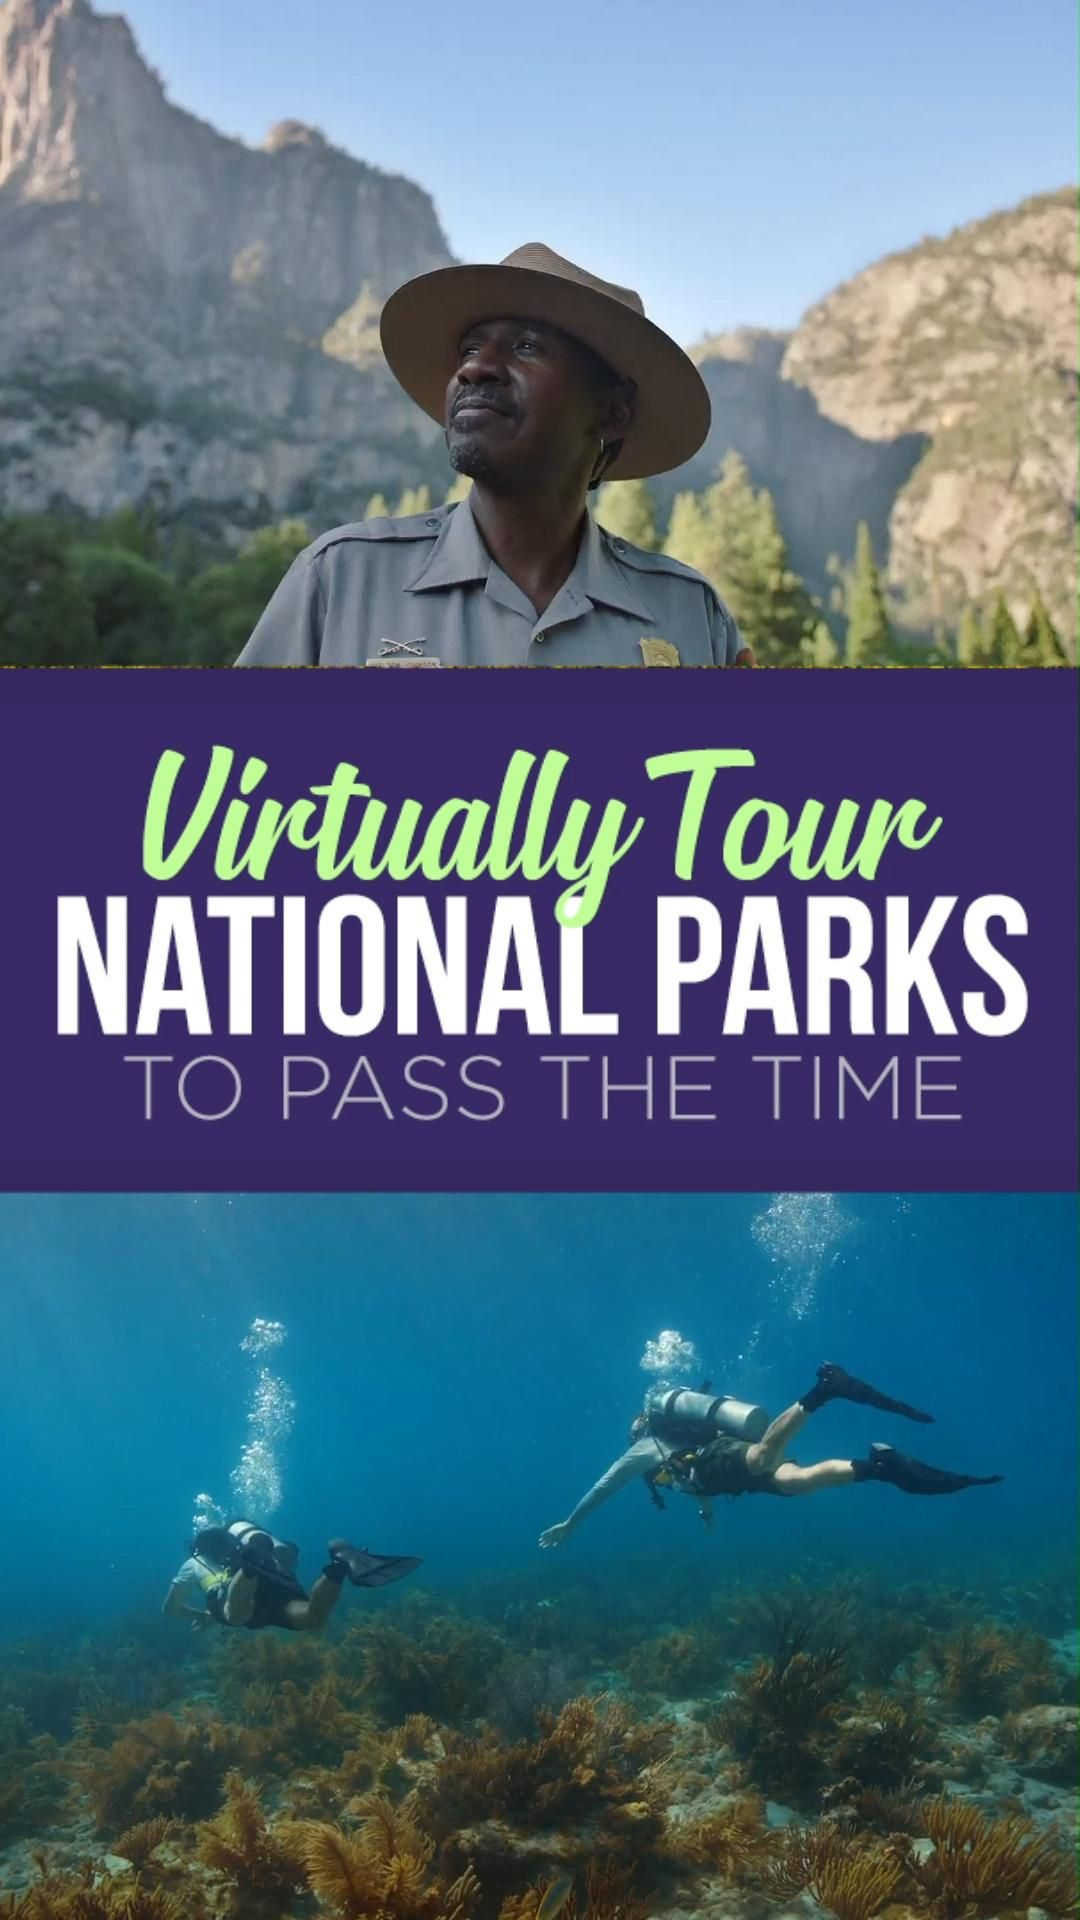 Google Arts & Culture teamed up with NPS to offer virtual tours of five great American national parks.